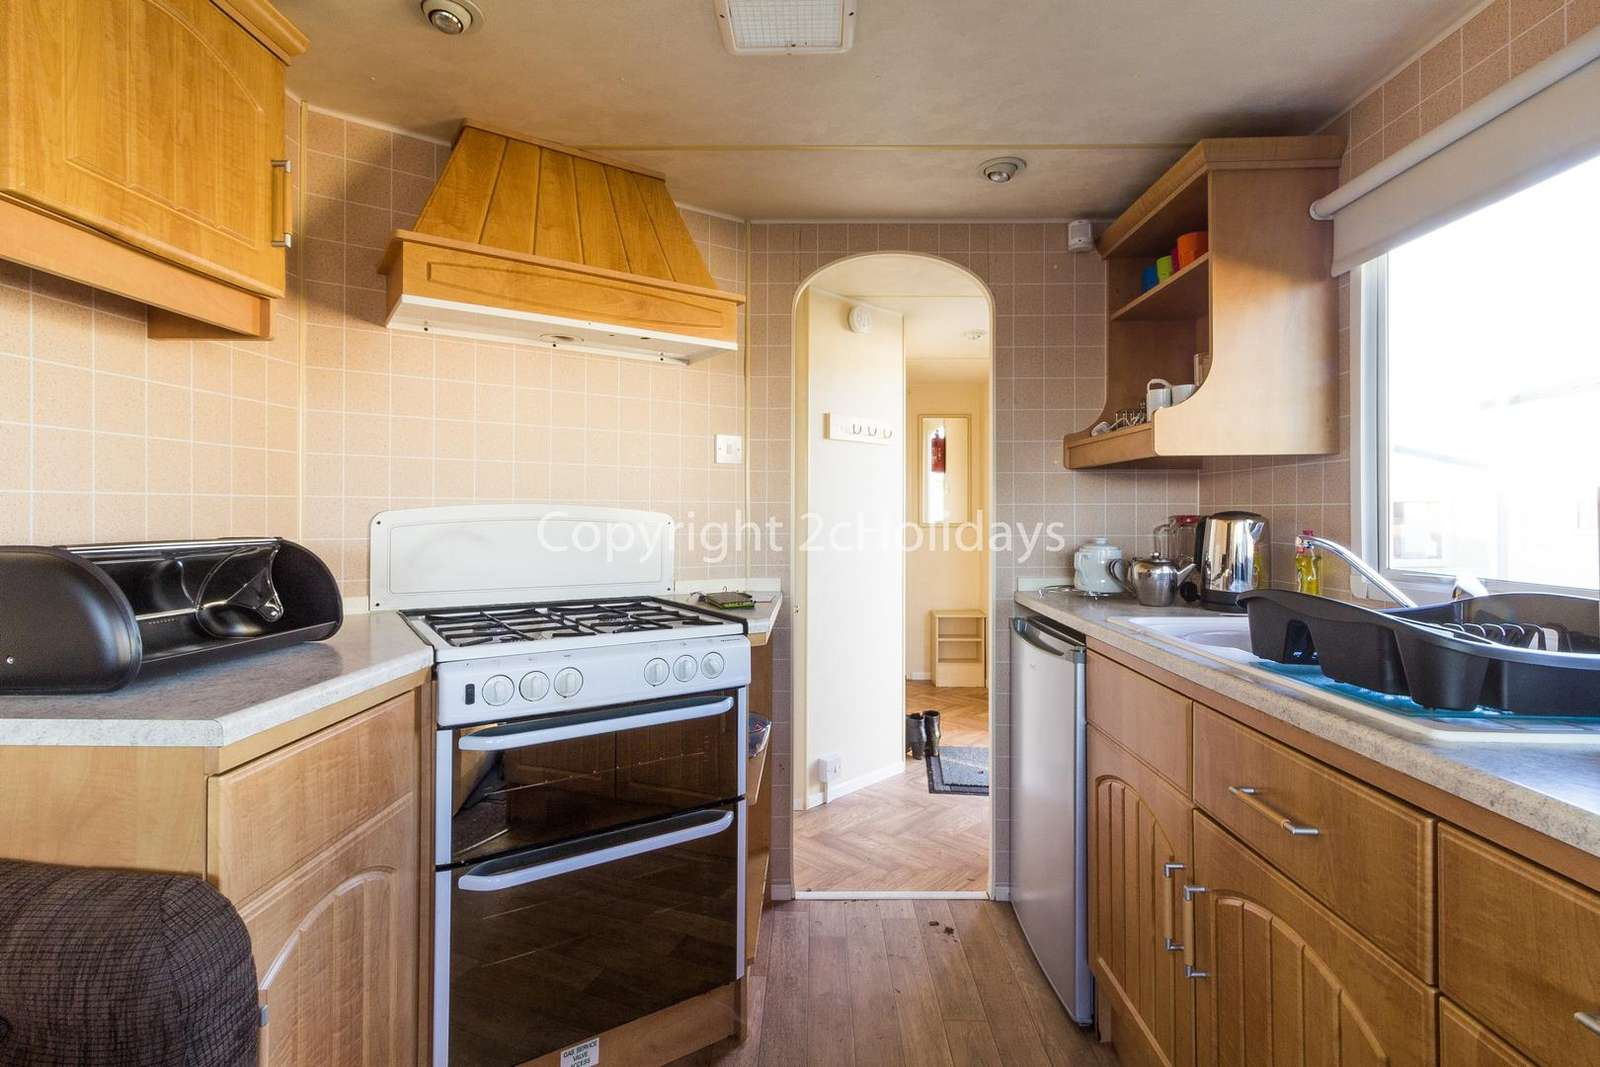 Caravan for hire in Scratby, Norfolk